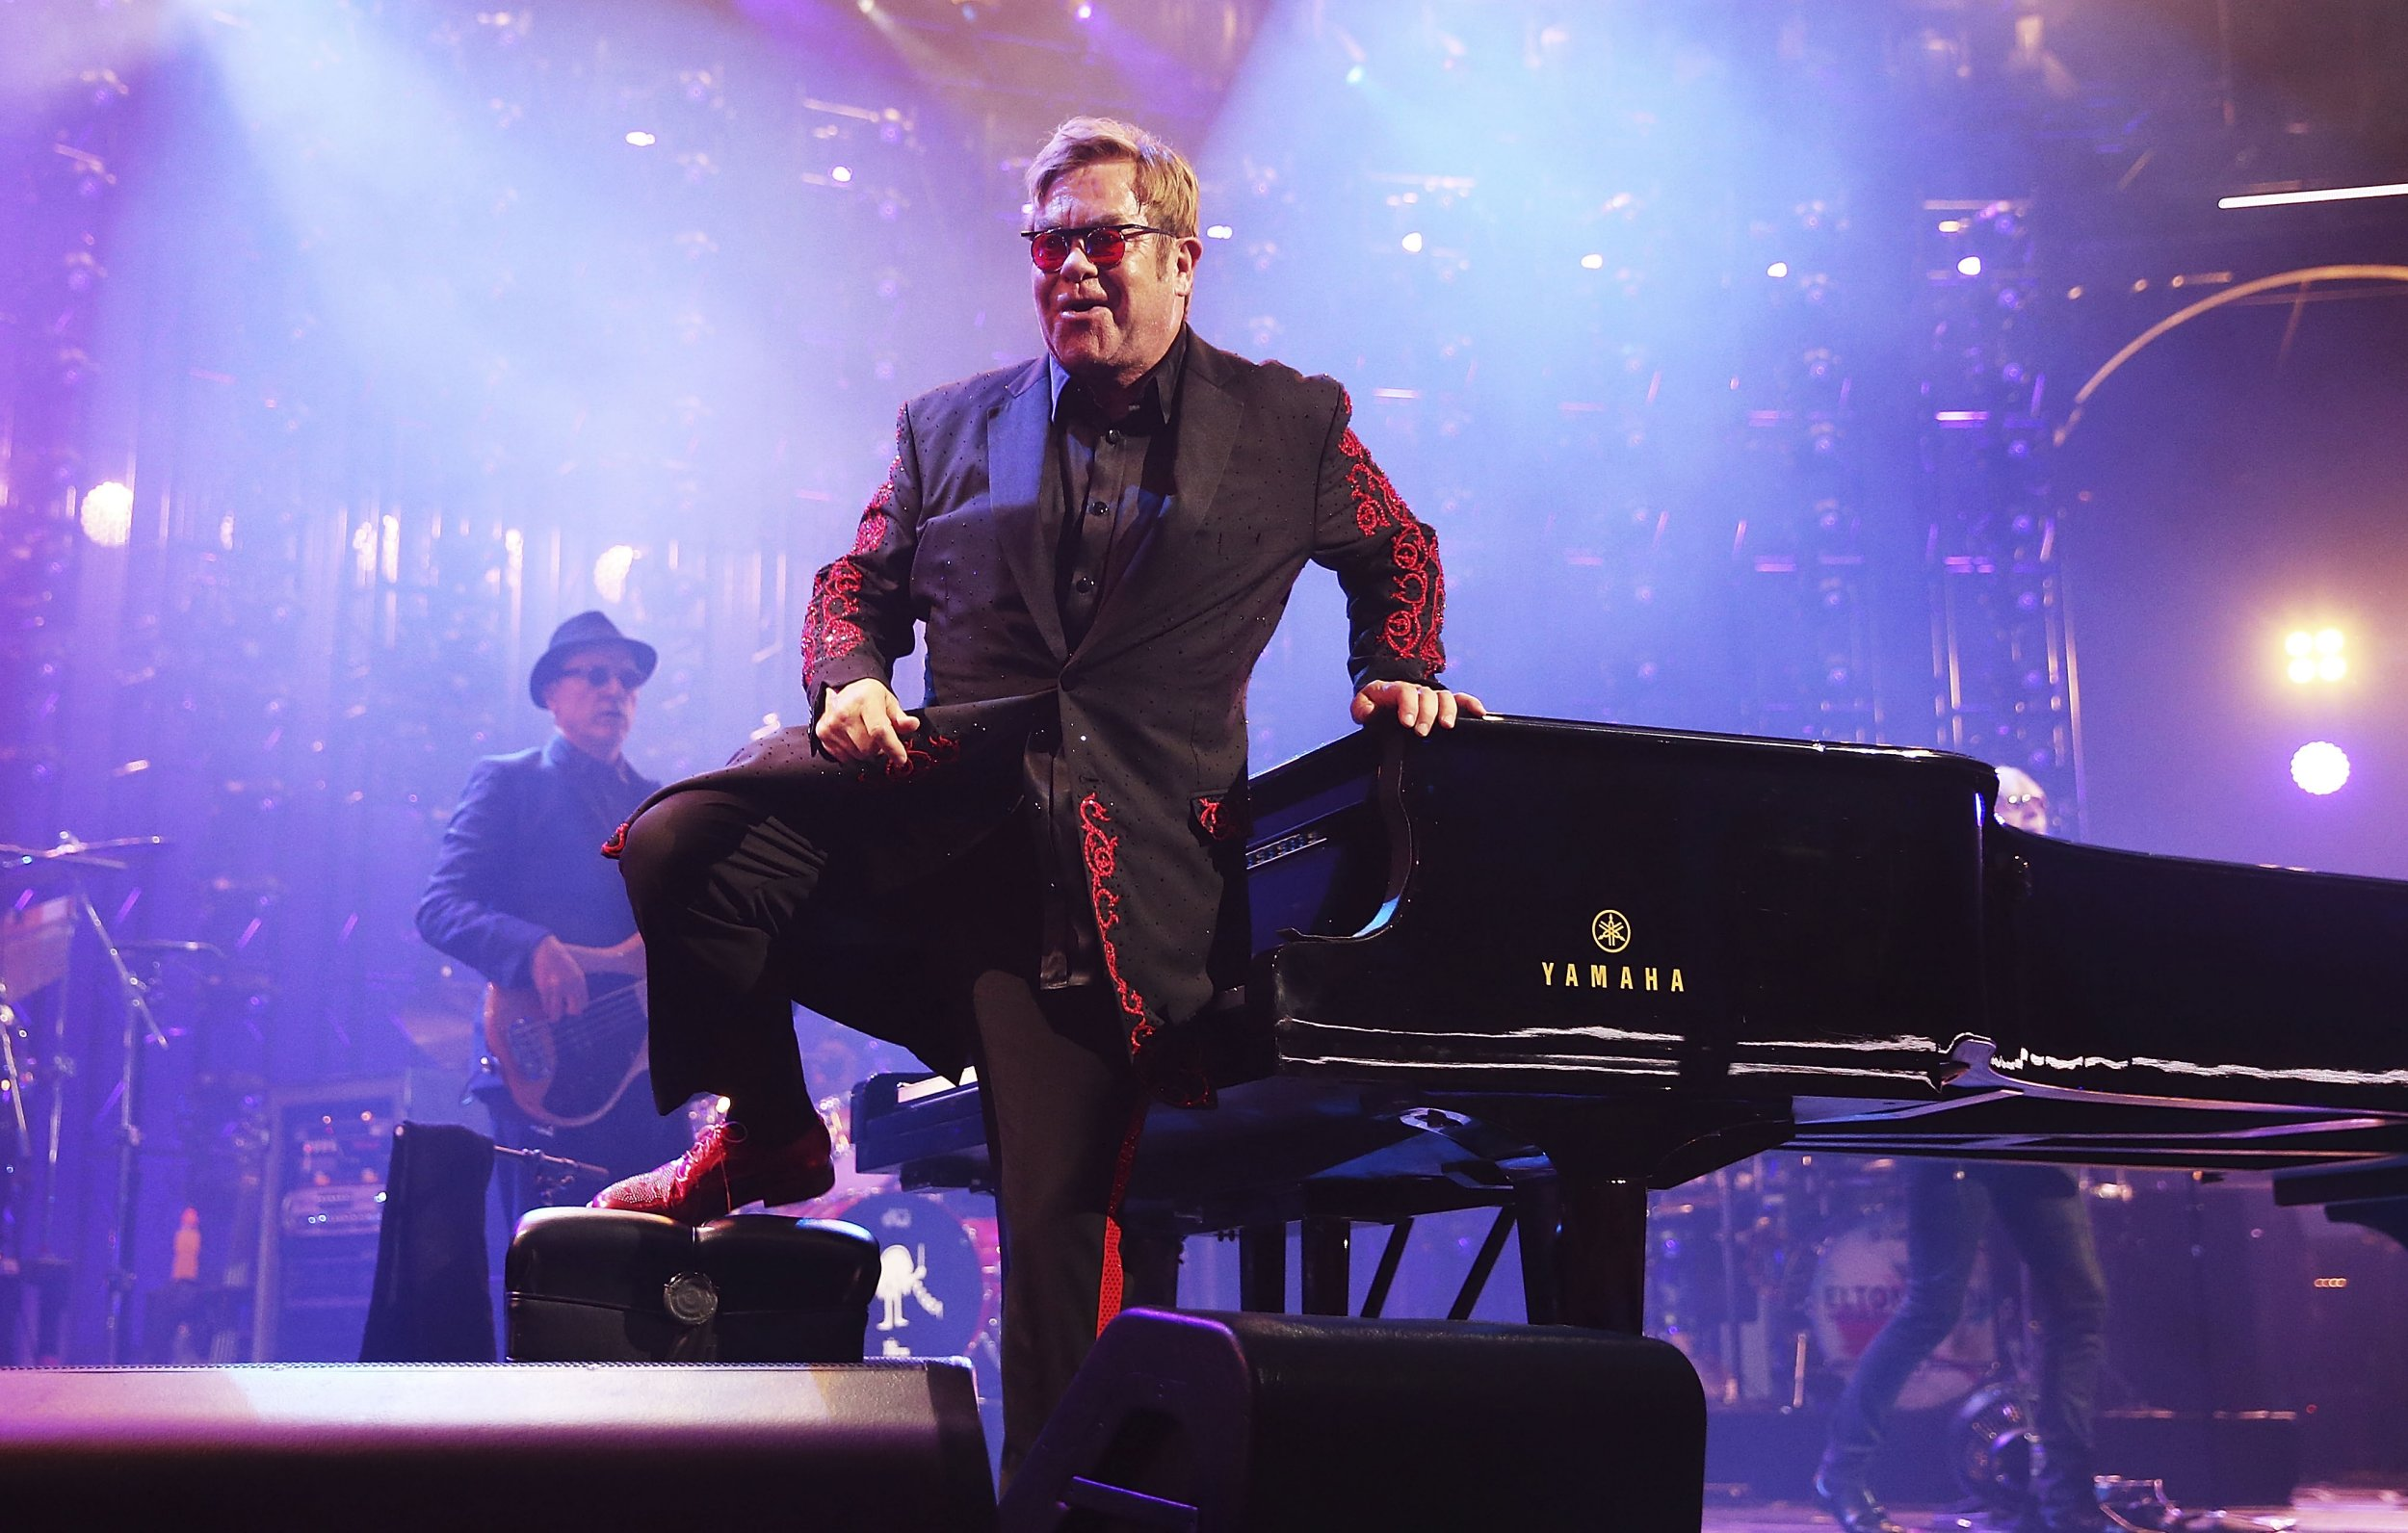 No, Sir Elton John is not planning his retirement from the music business